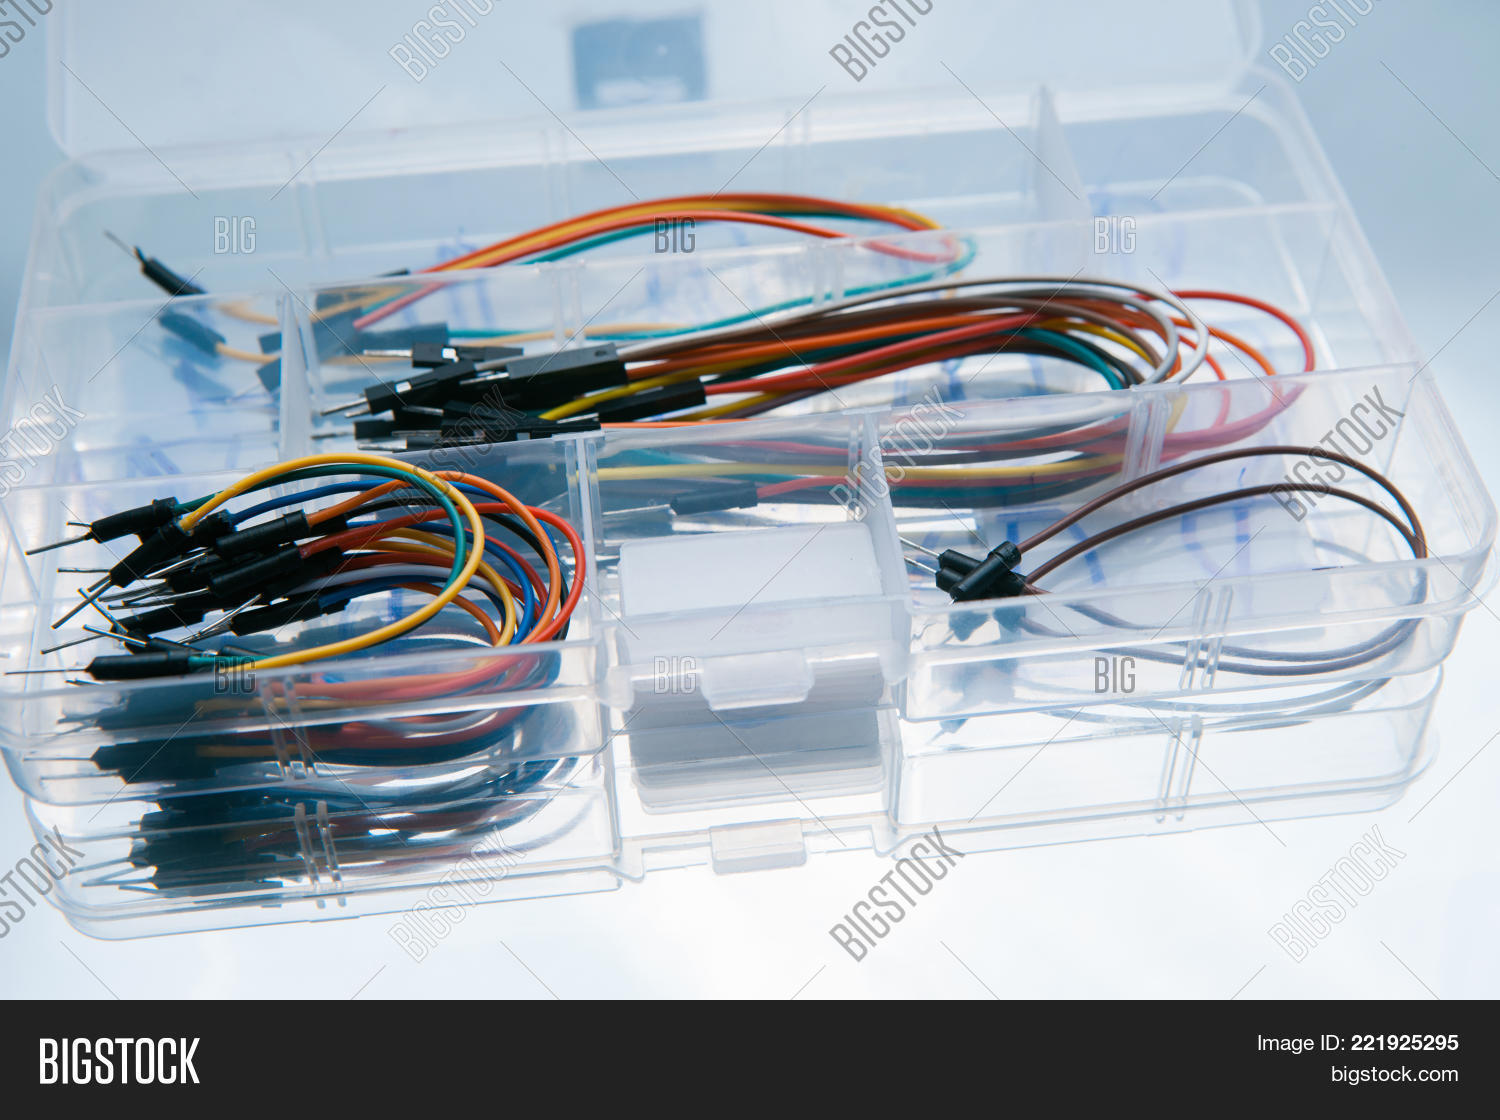 Box Jump Wires Cables Image & Photo (Free Trial) | Bigstock